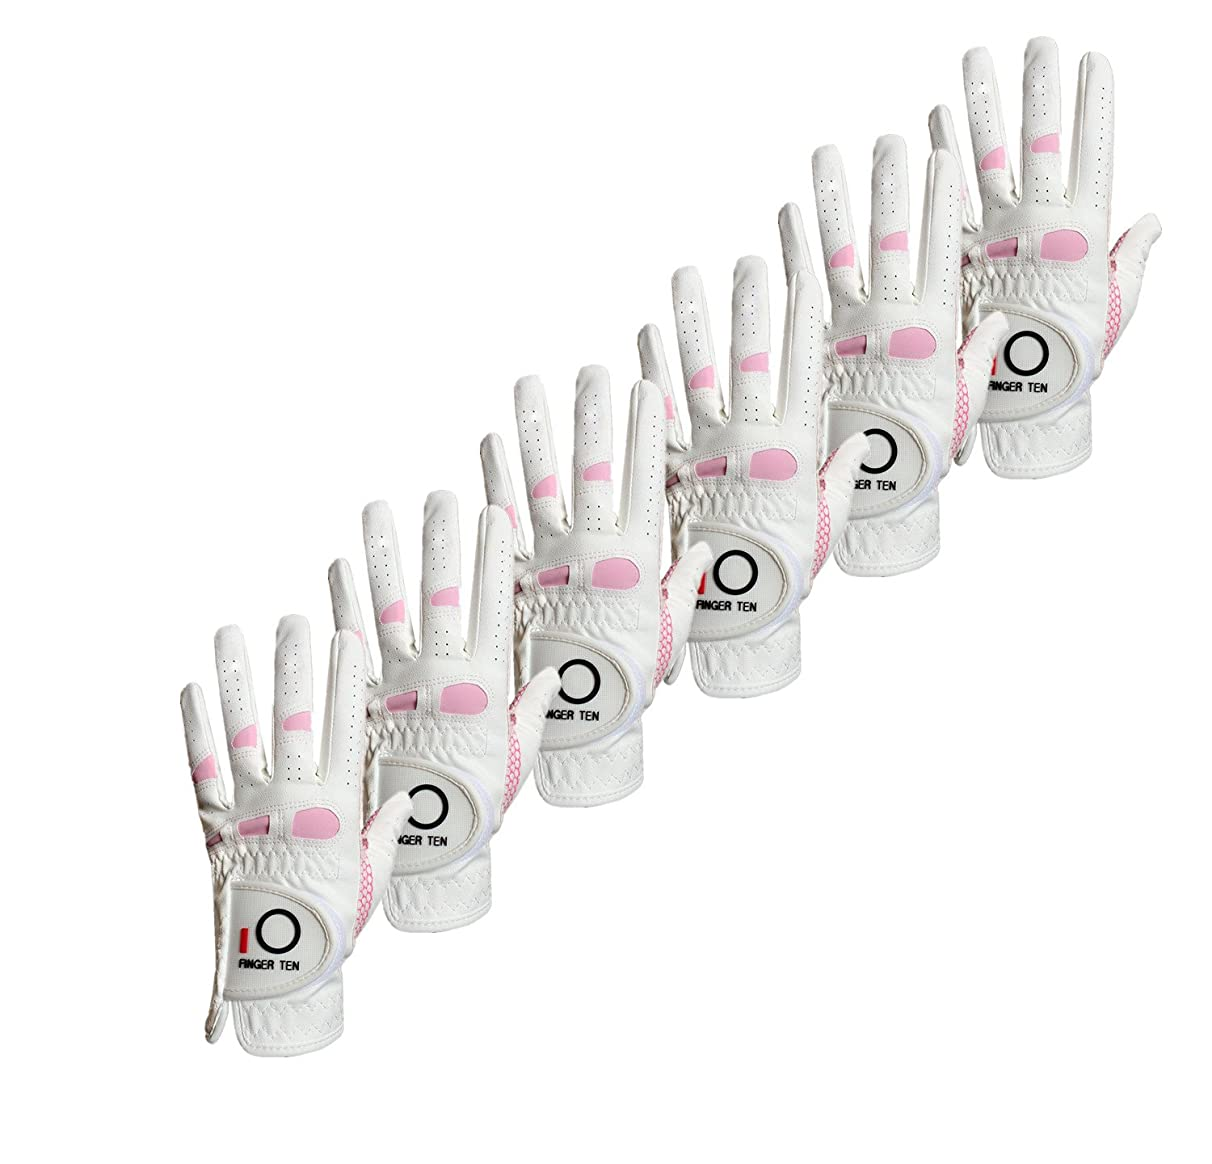 FINGER TEN Women's Golf Gloves Ladies Left Hand Right Value 6 Pack, All Weather Extra Grip Lh Rh, Size Fit Small Medium Large XL